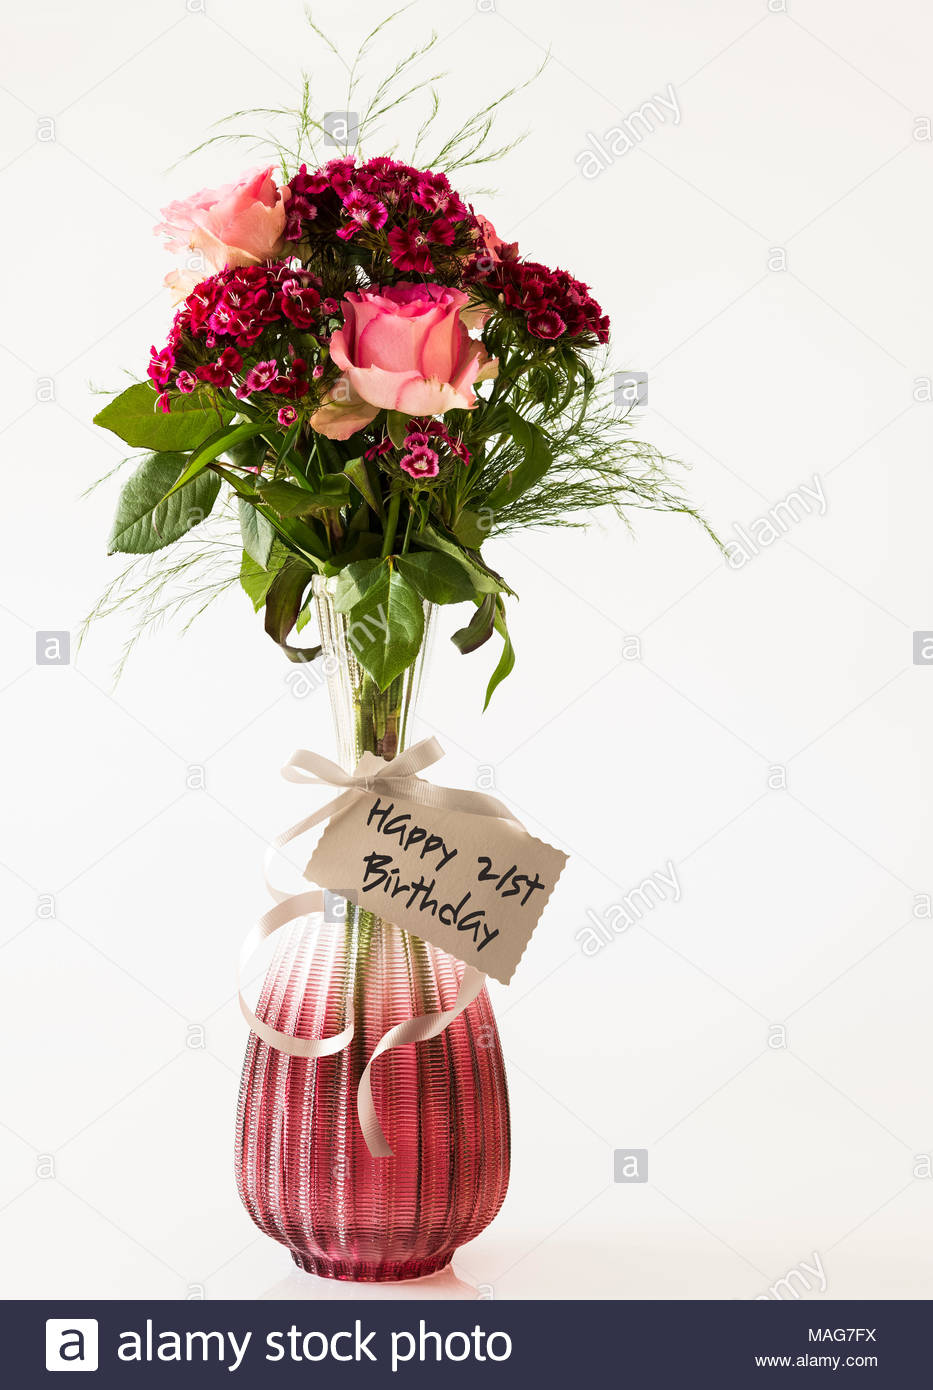 happy birthday text flowers stockfotos happy birthday text flowers bilder alamy. Black Bedroom Furniture Sets. Home Design Ideas